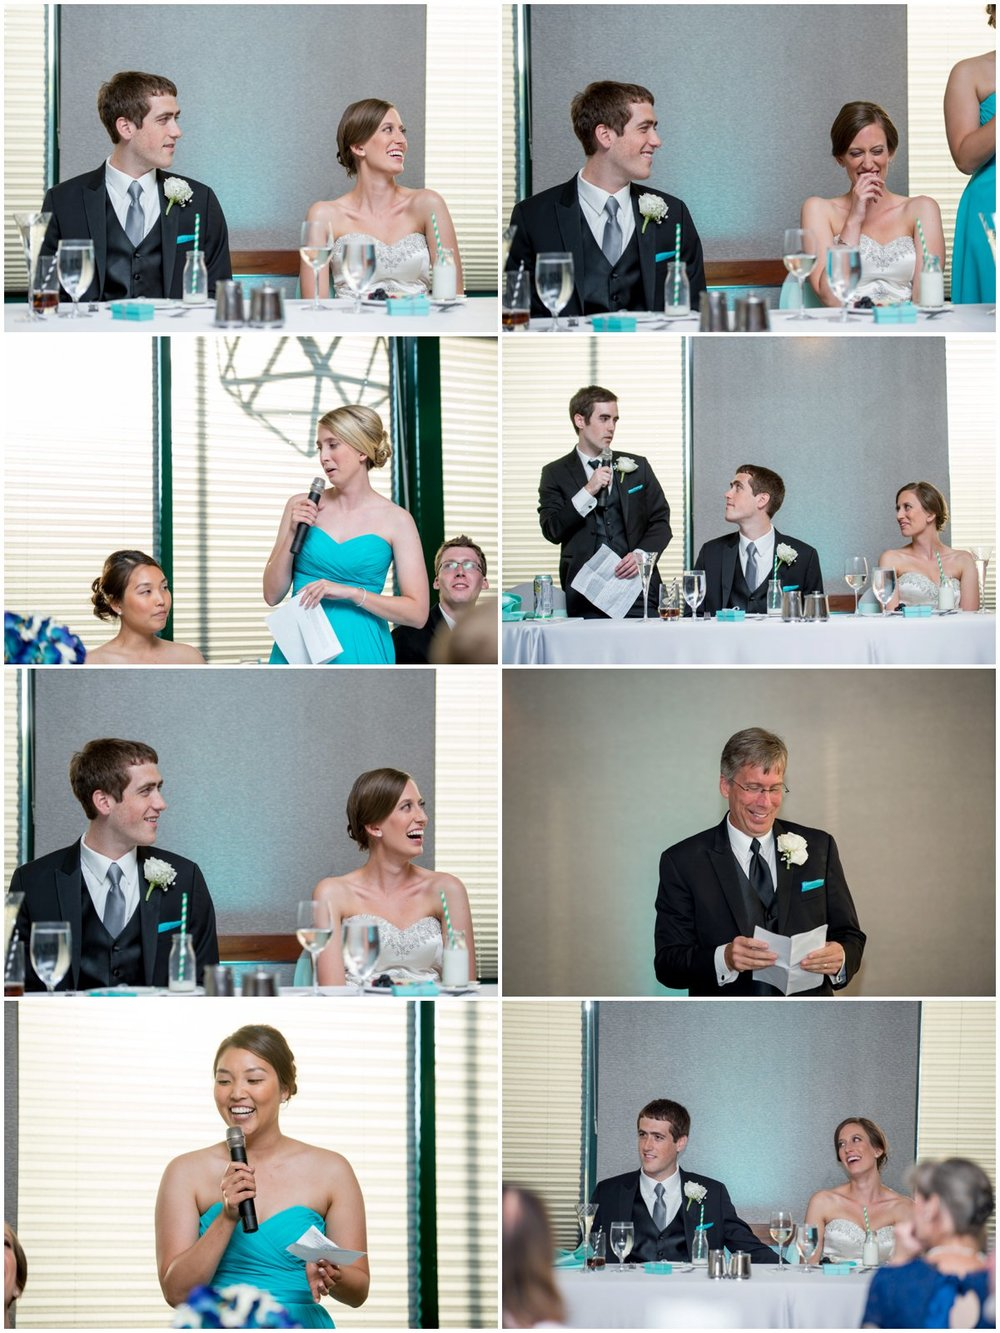 Mavris-wedding-pictures-Nate-Crouch-021.jpg